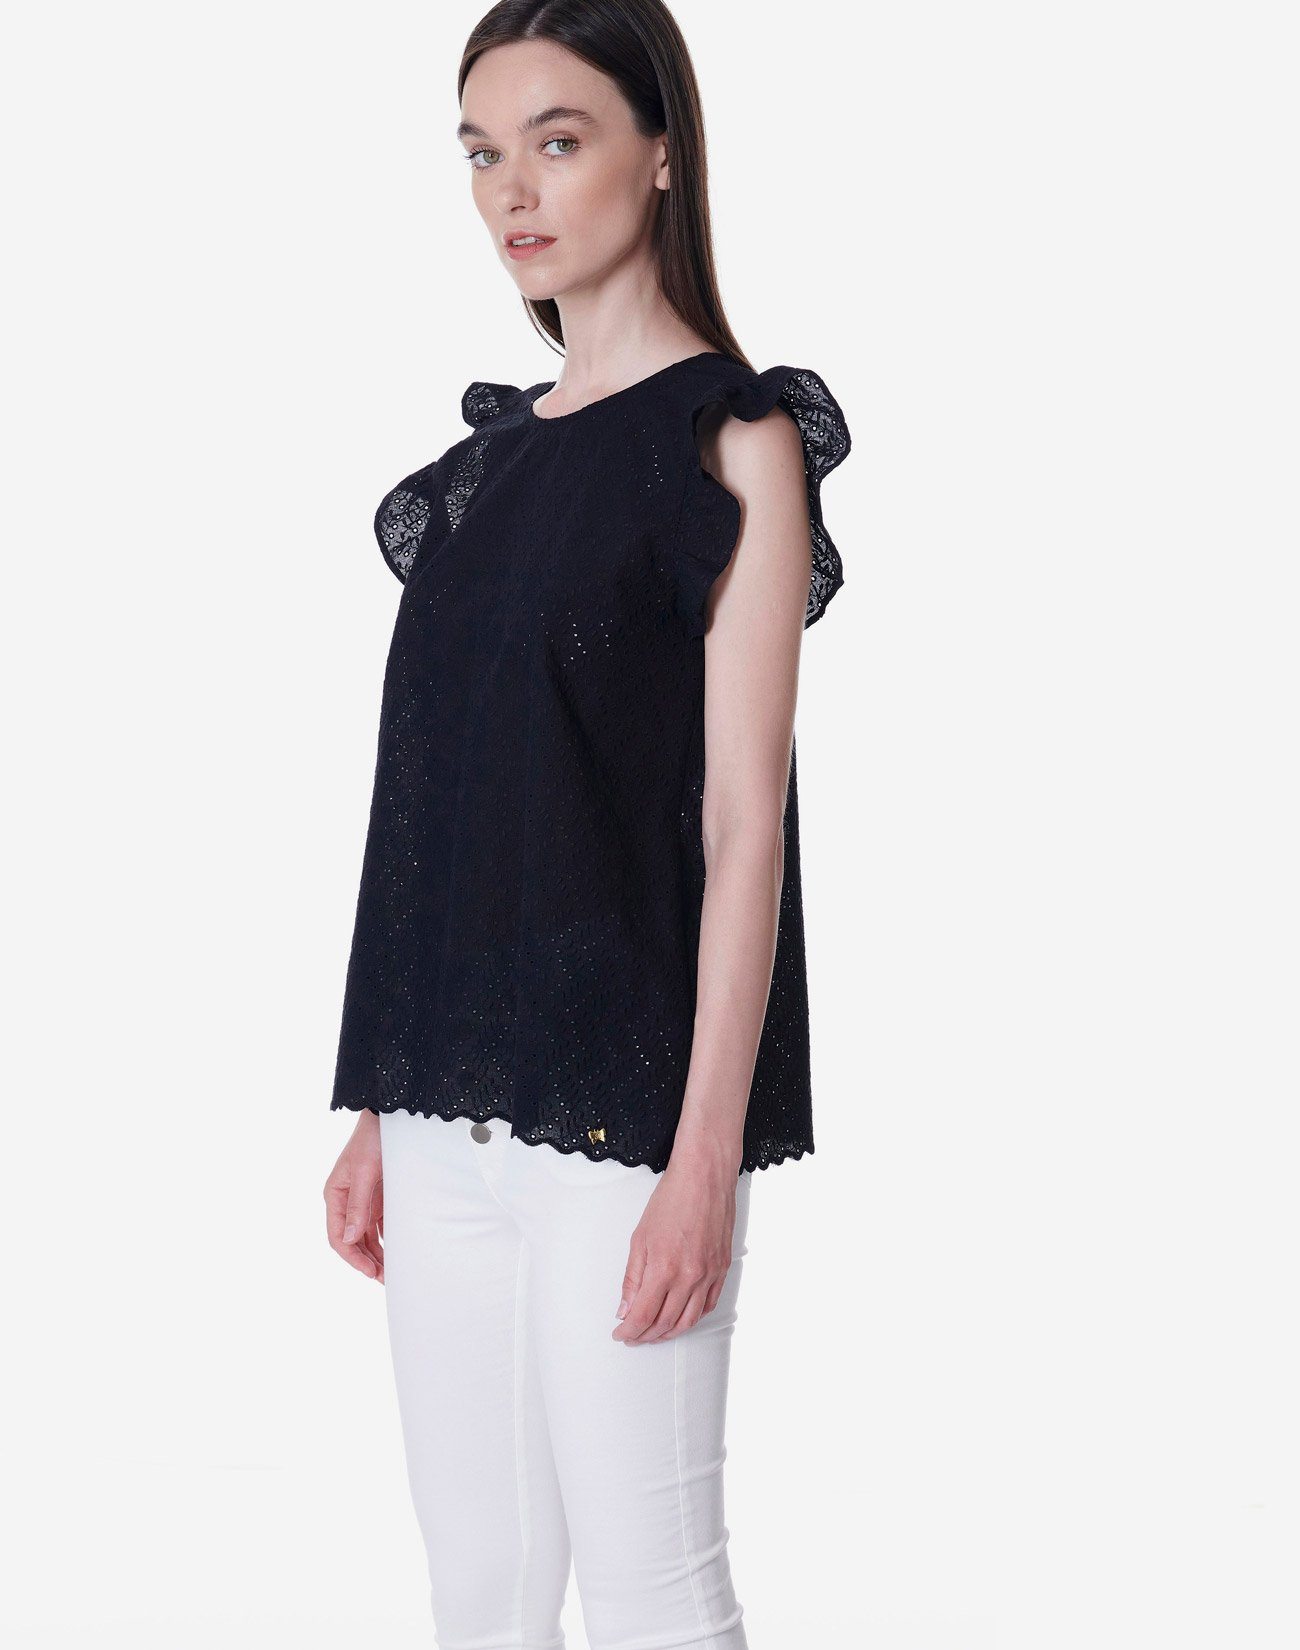 Broderie top with buttons